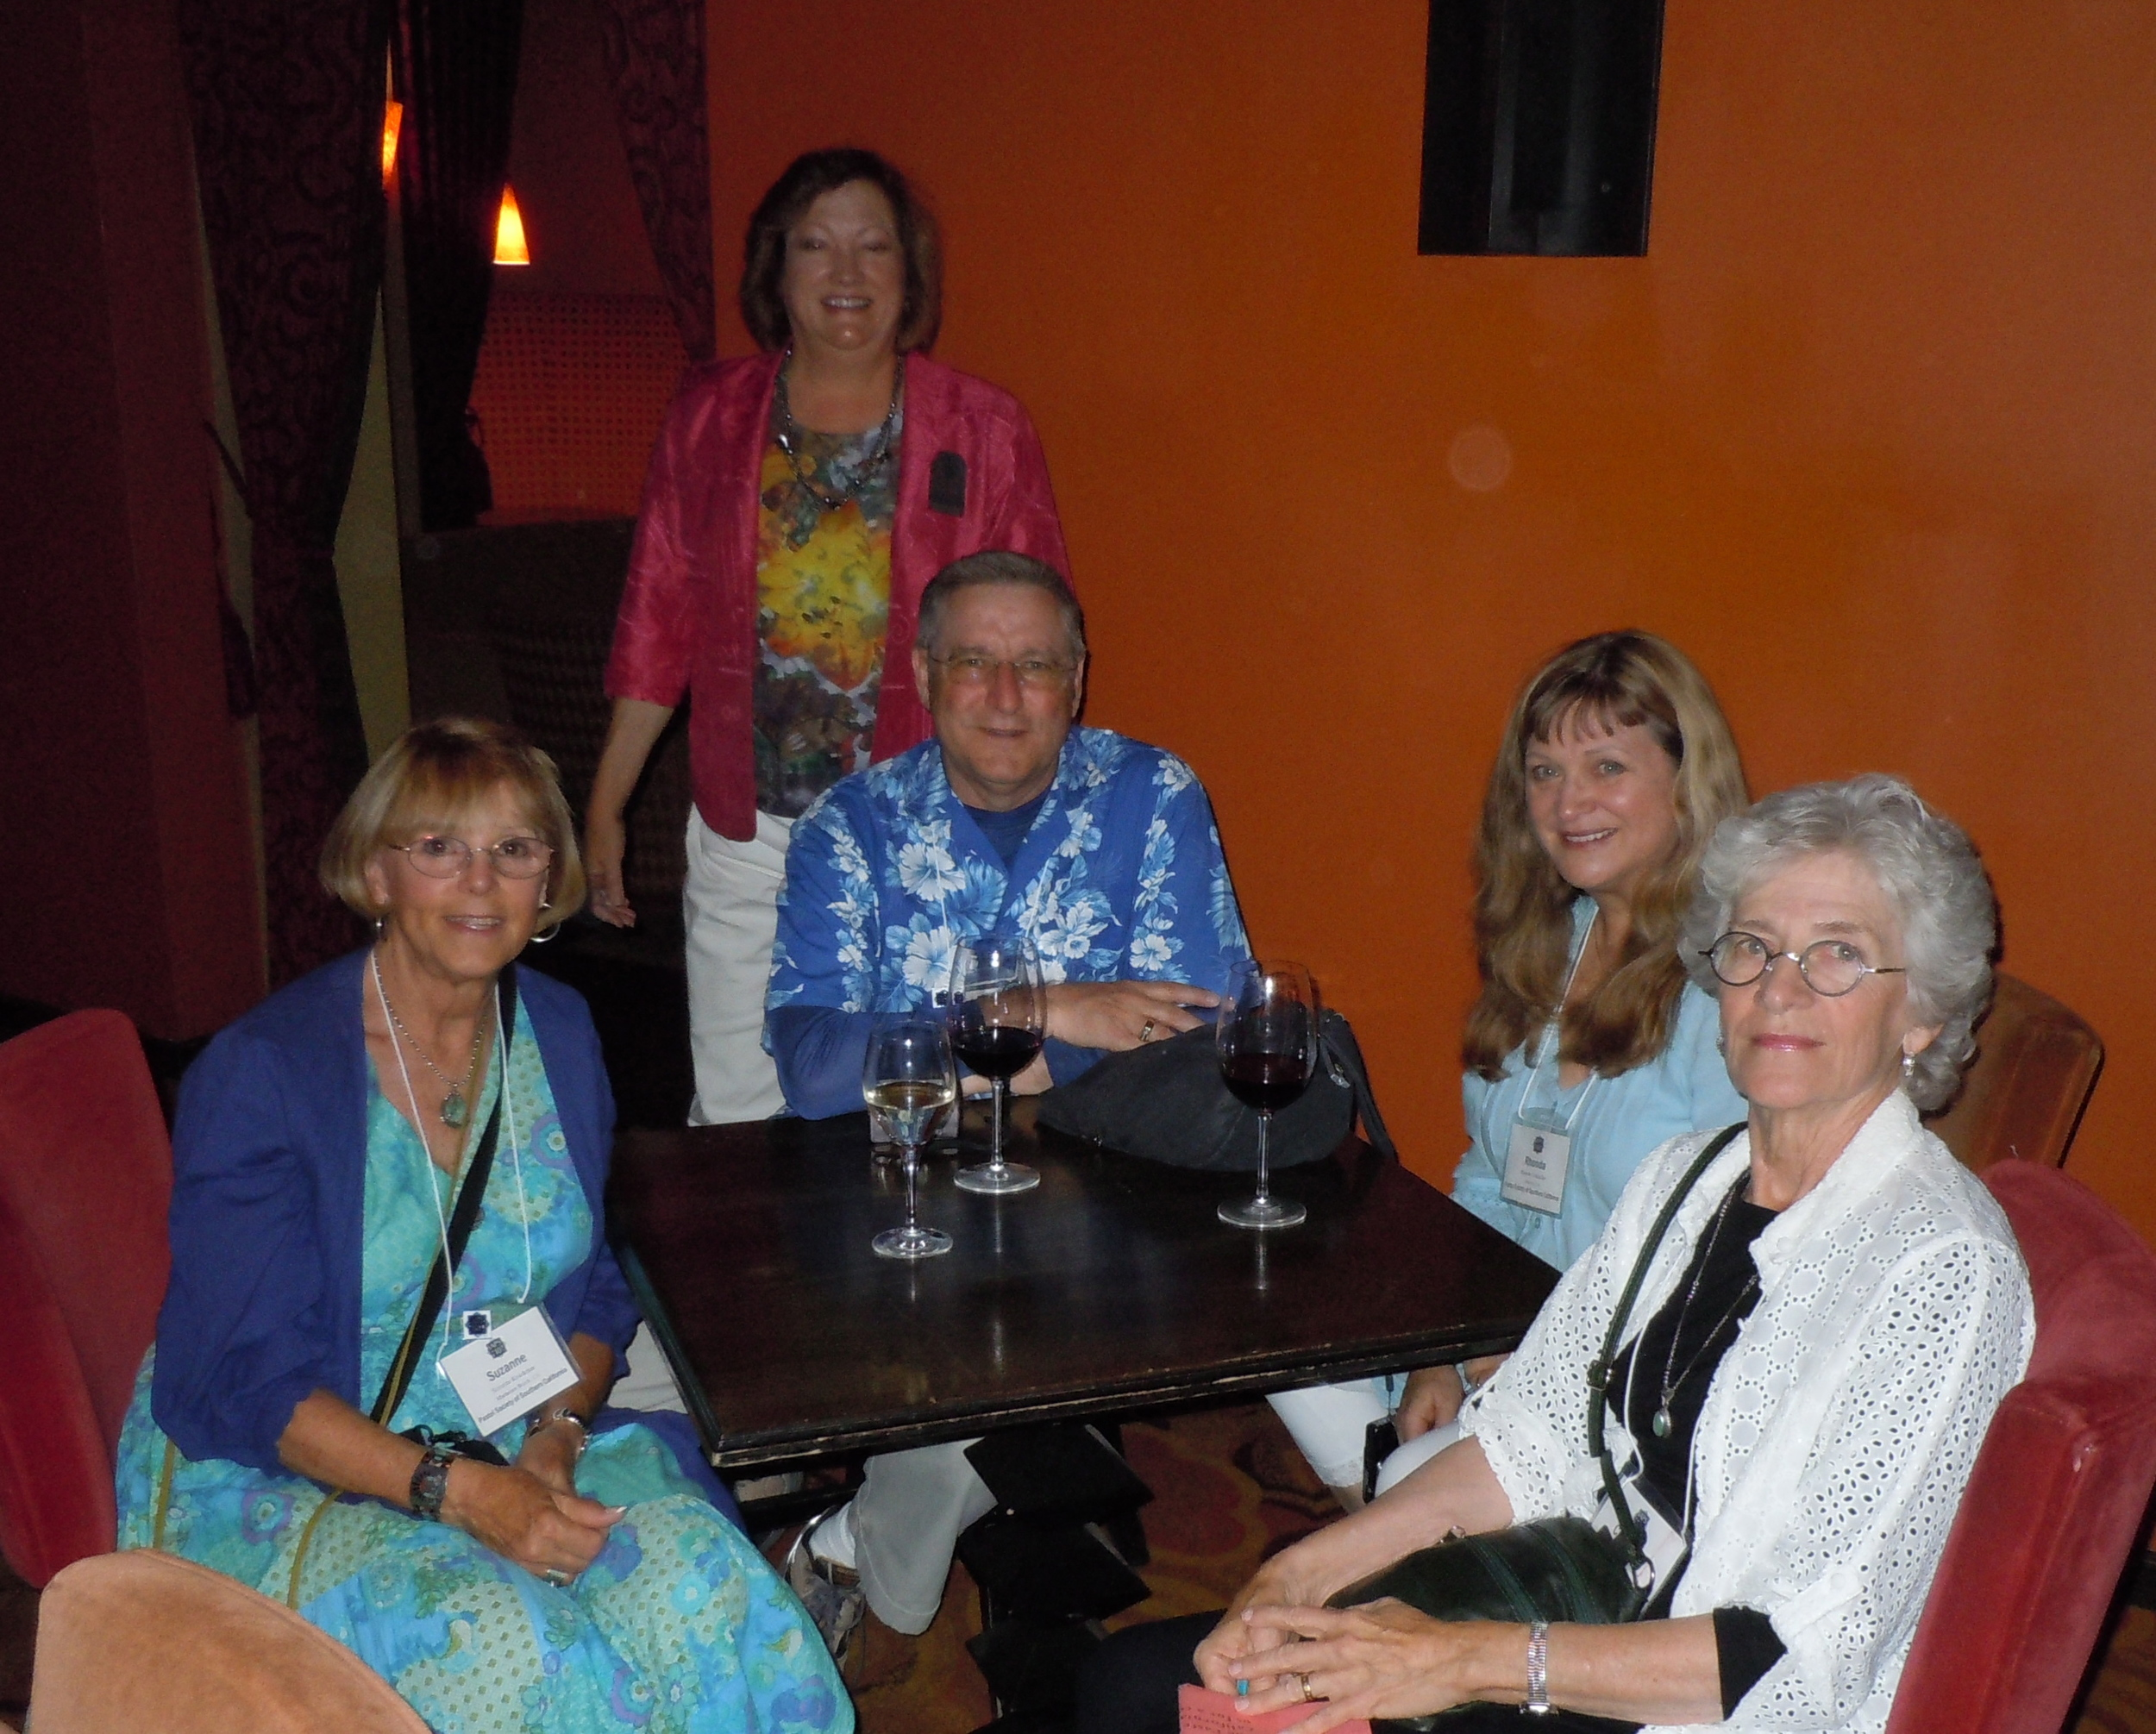 Sue, Rhonda, Scott, and Catherine at PSSC cocktail party.